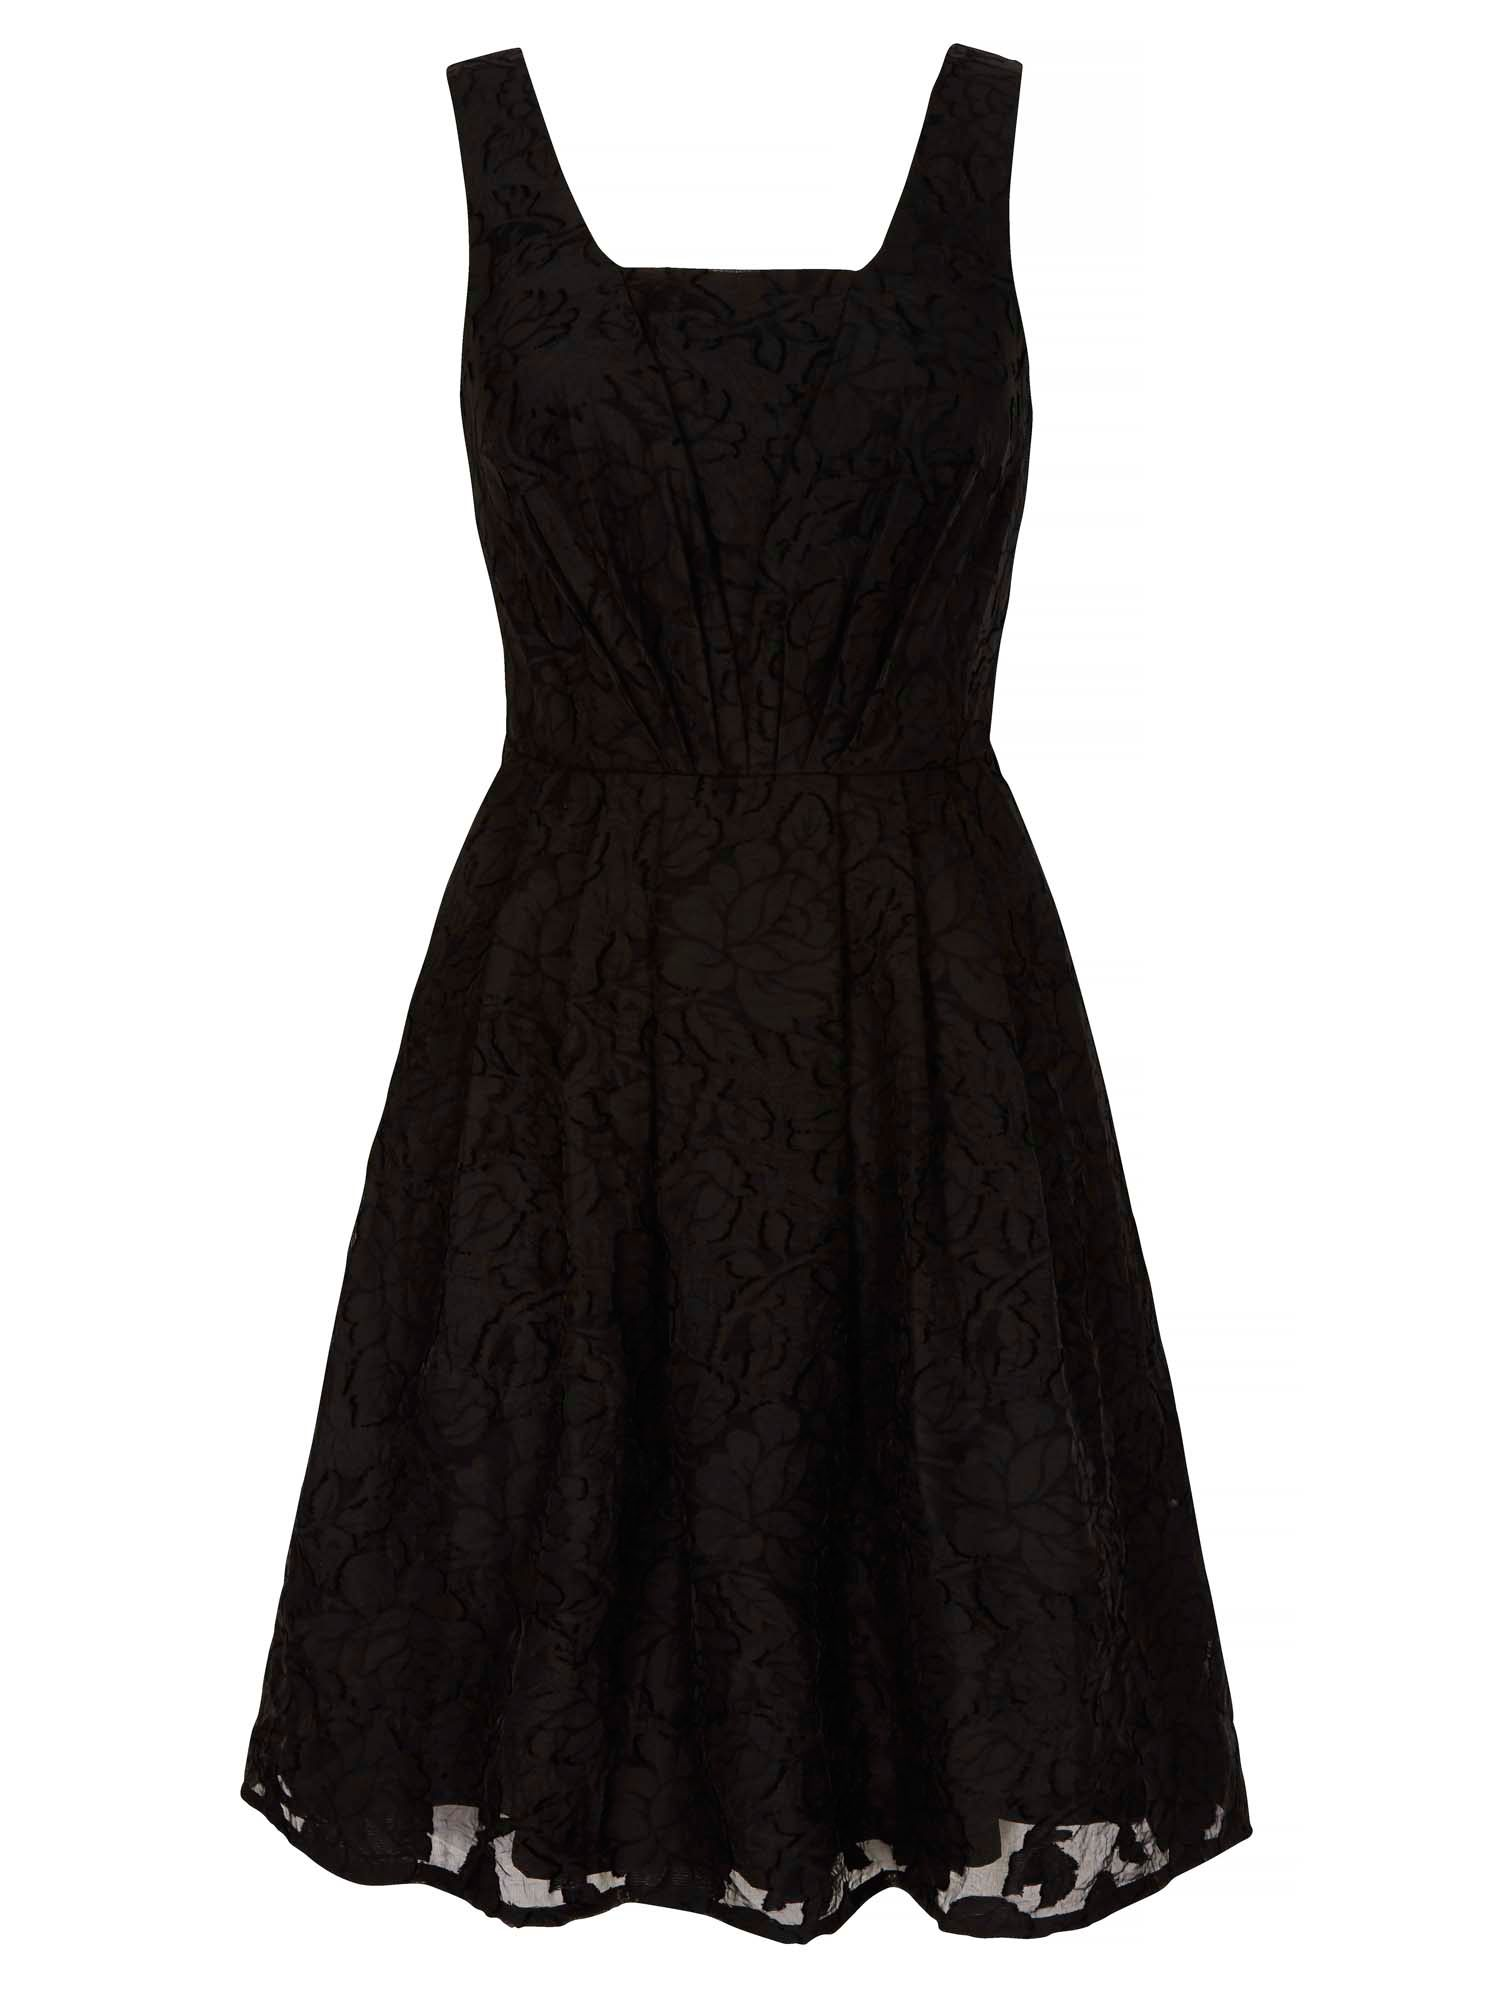 Yumi Floral Jacquard Party Dress, Black